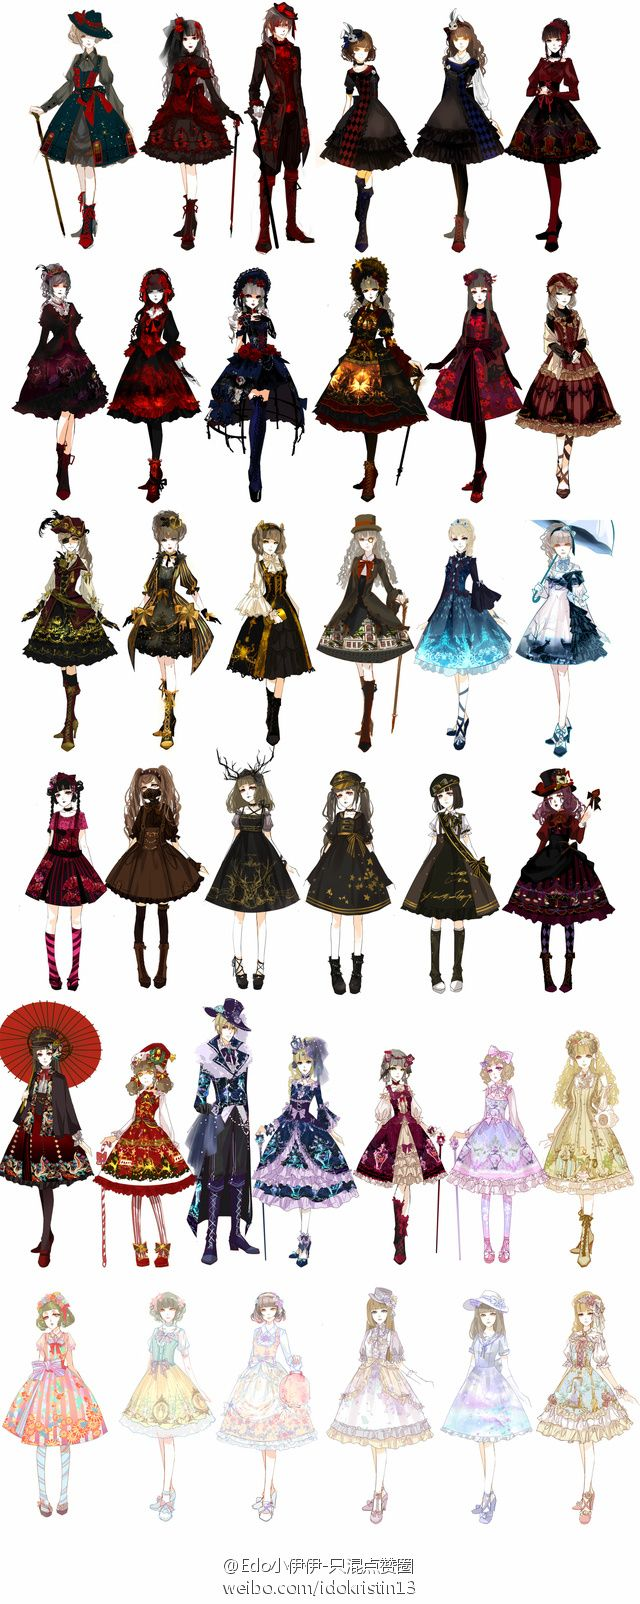 Lolita Dresses. This is kind of cool.